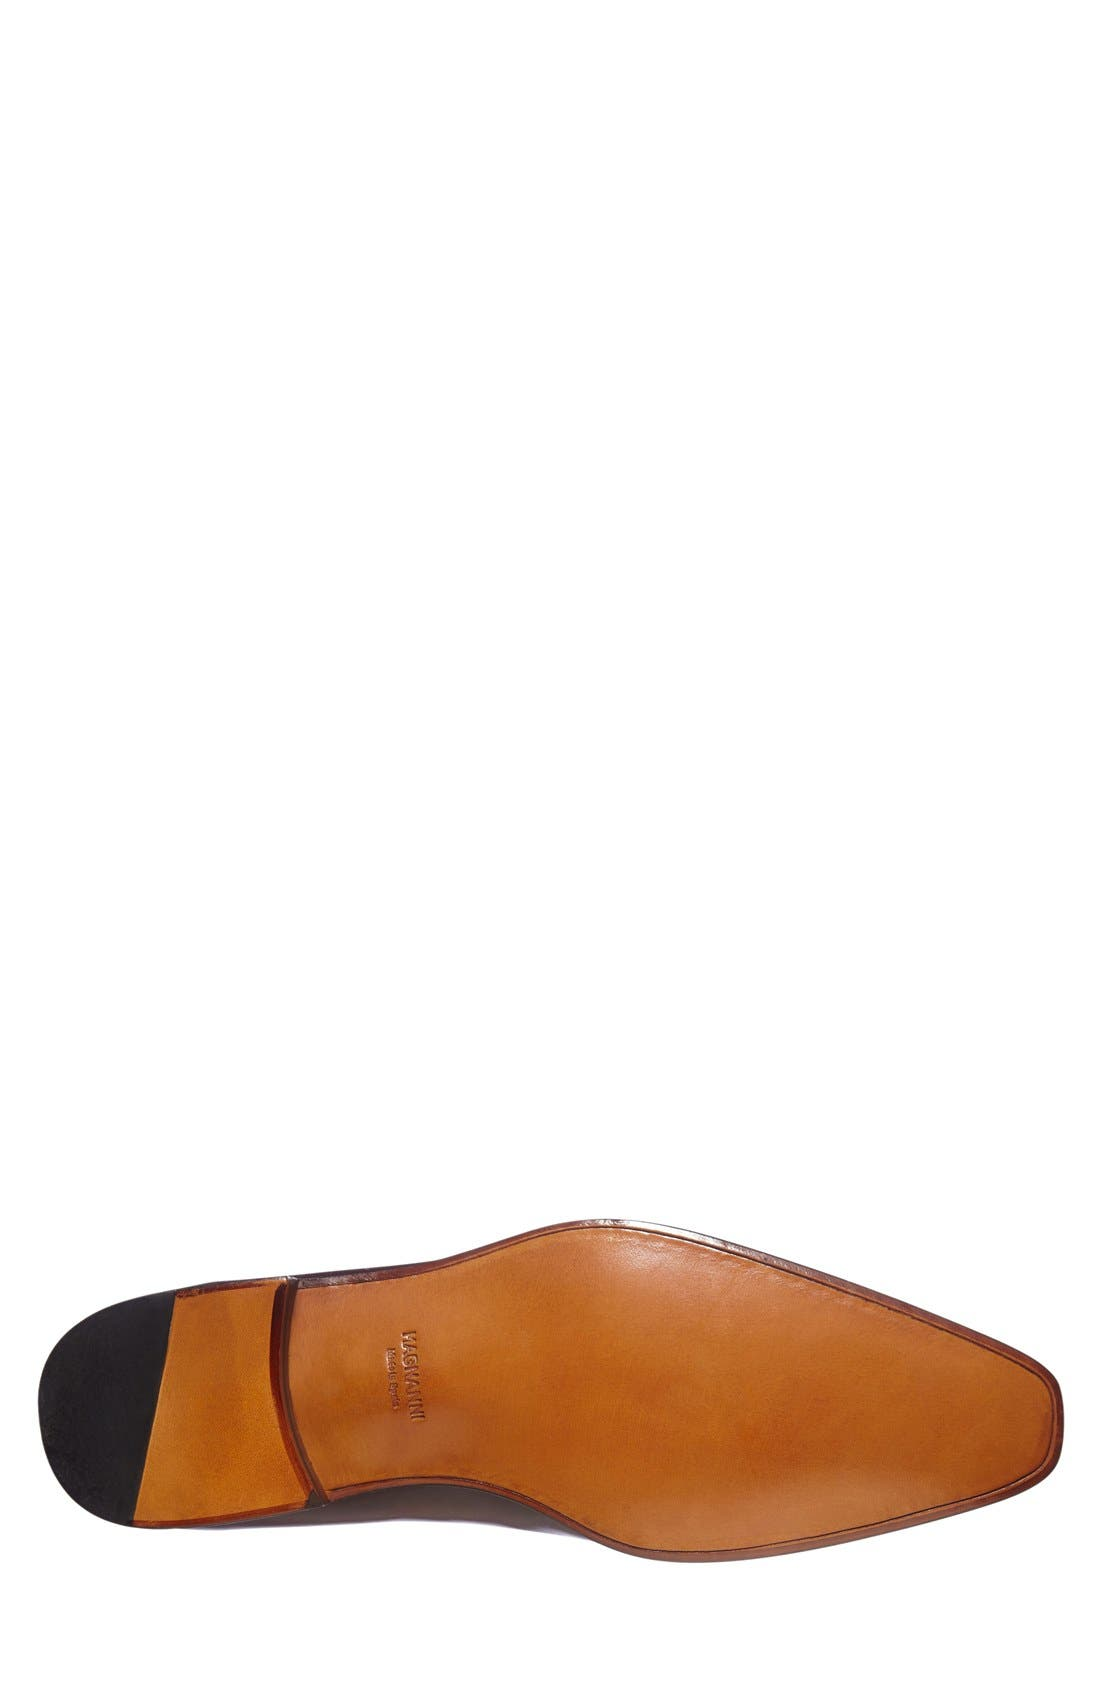 'Cruz' Plain Toe Oxford,                             Alternate thumbnail 4, color,                             Cognac Leather